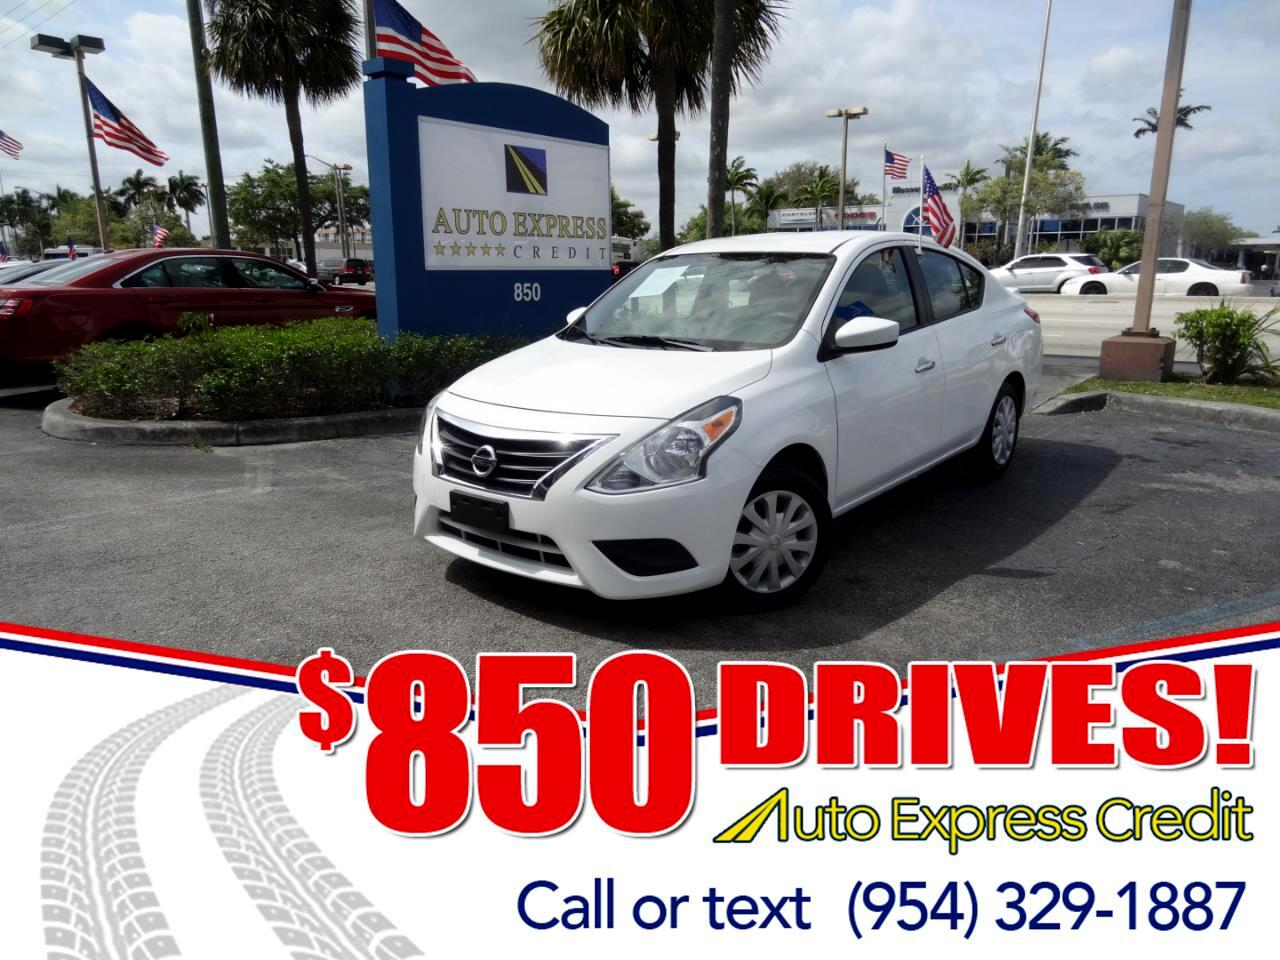 Used 2018 Nissan Versa For Sale In Plantation FL 33317 Auto Express Credit